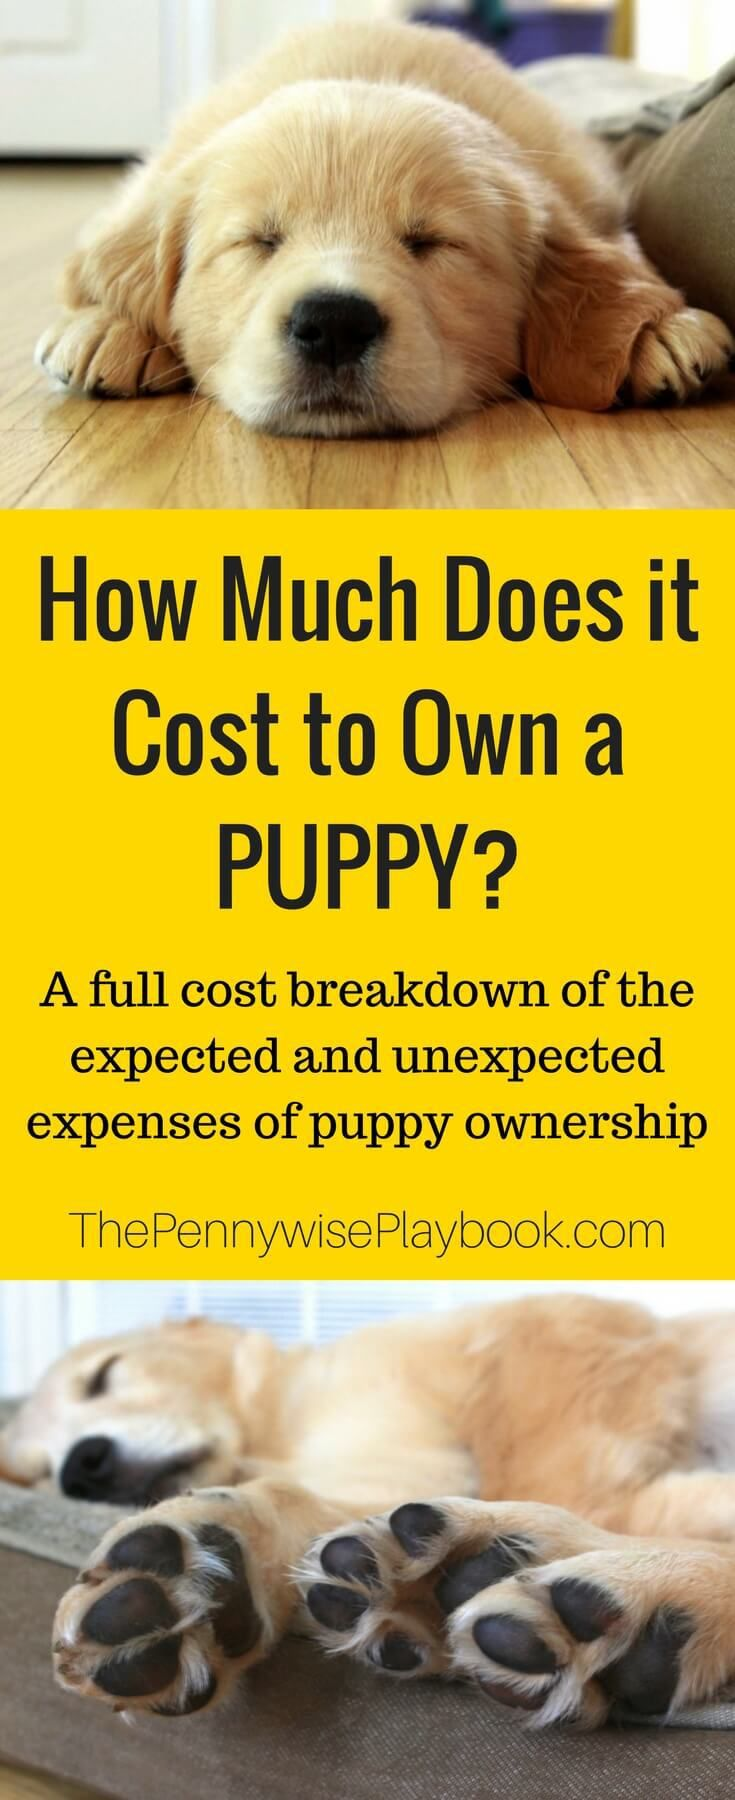 How much does it cost to own a puppy with images puppy